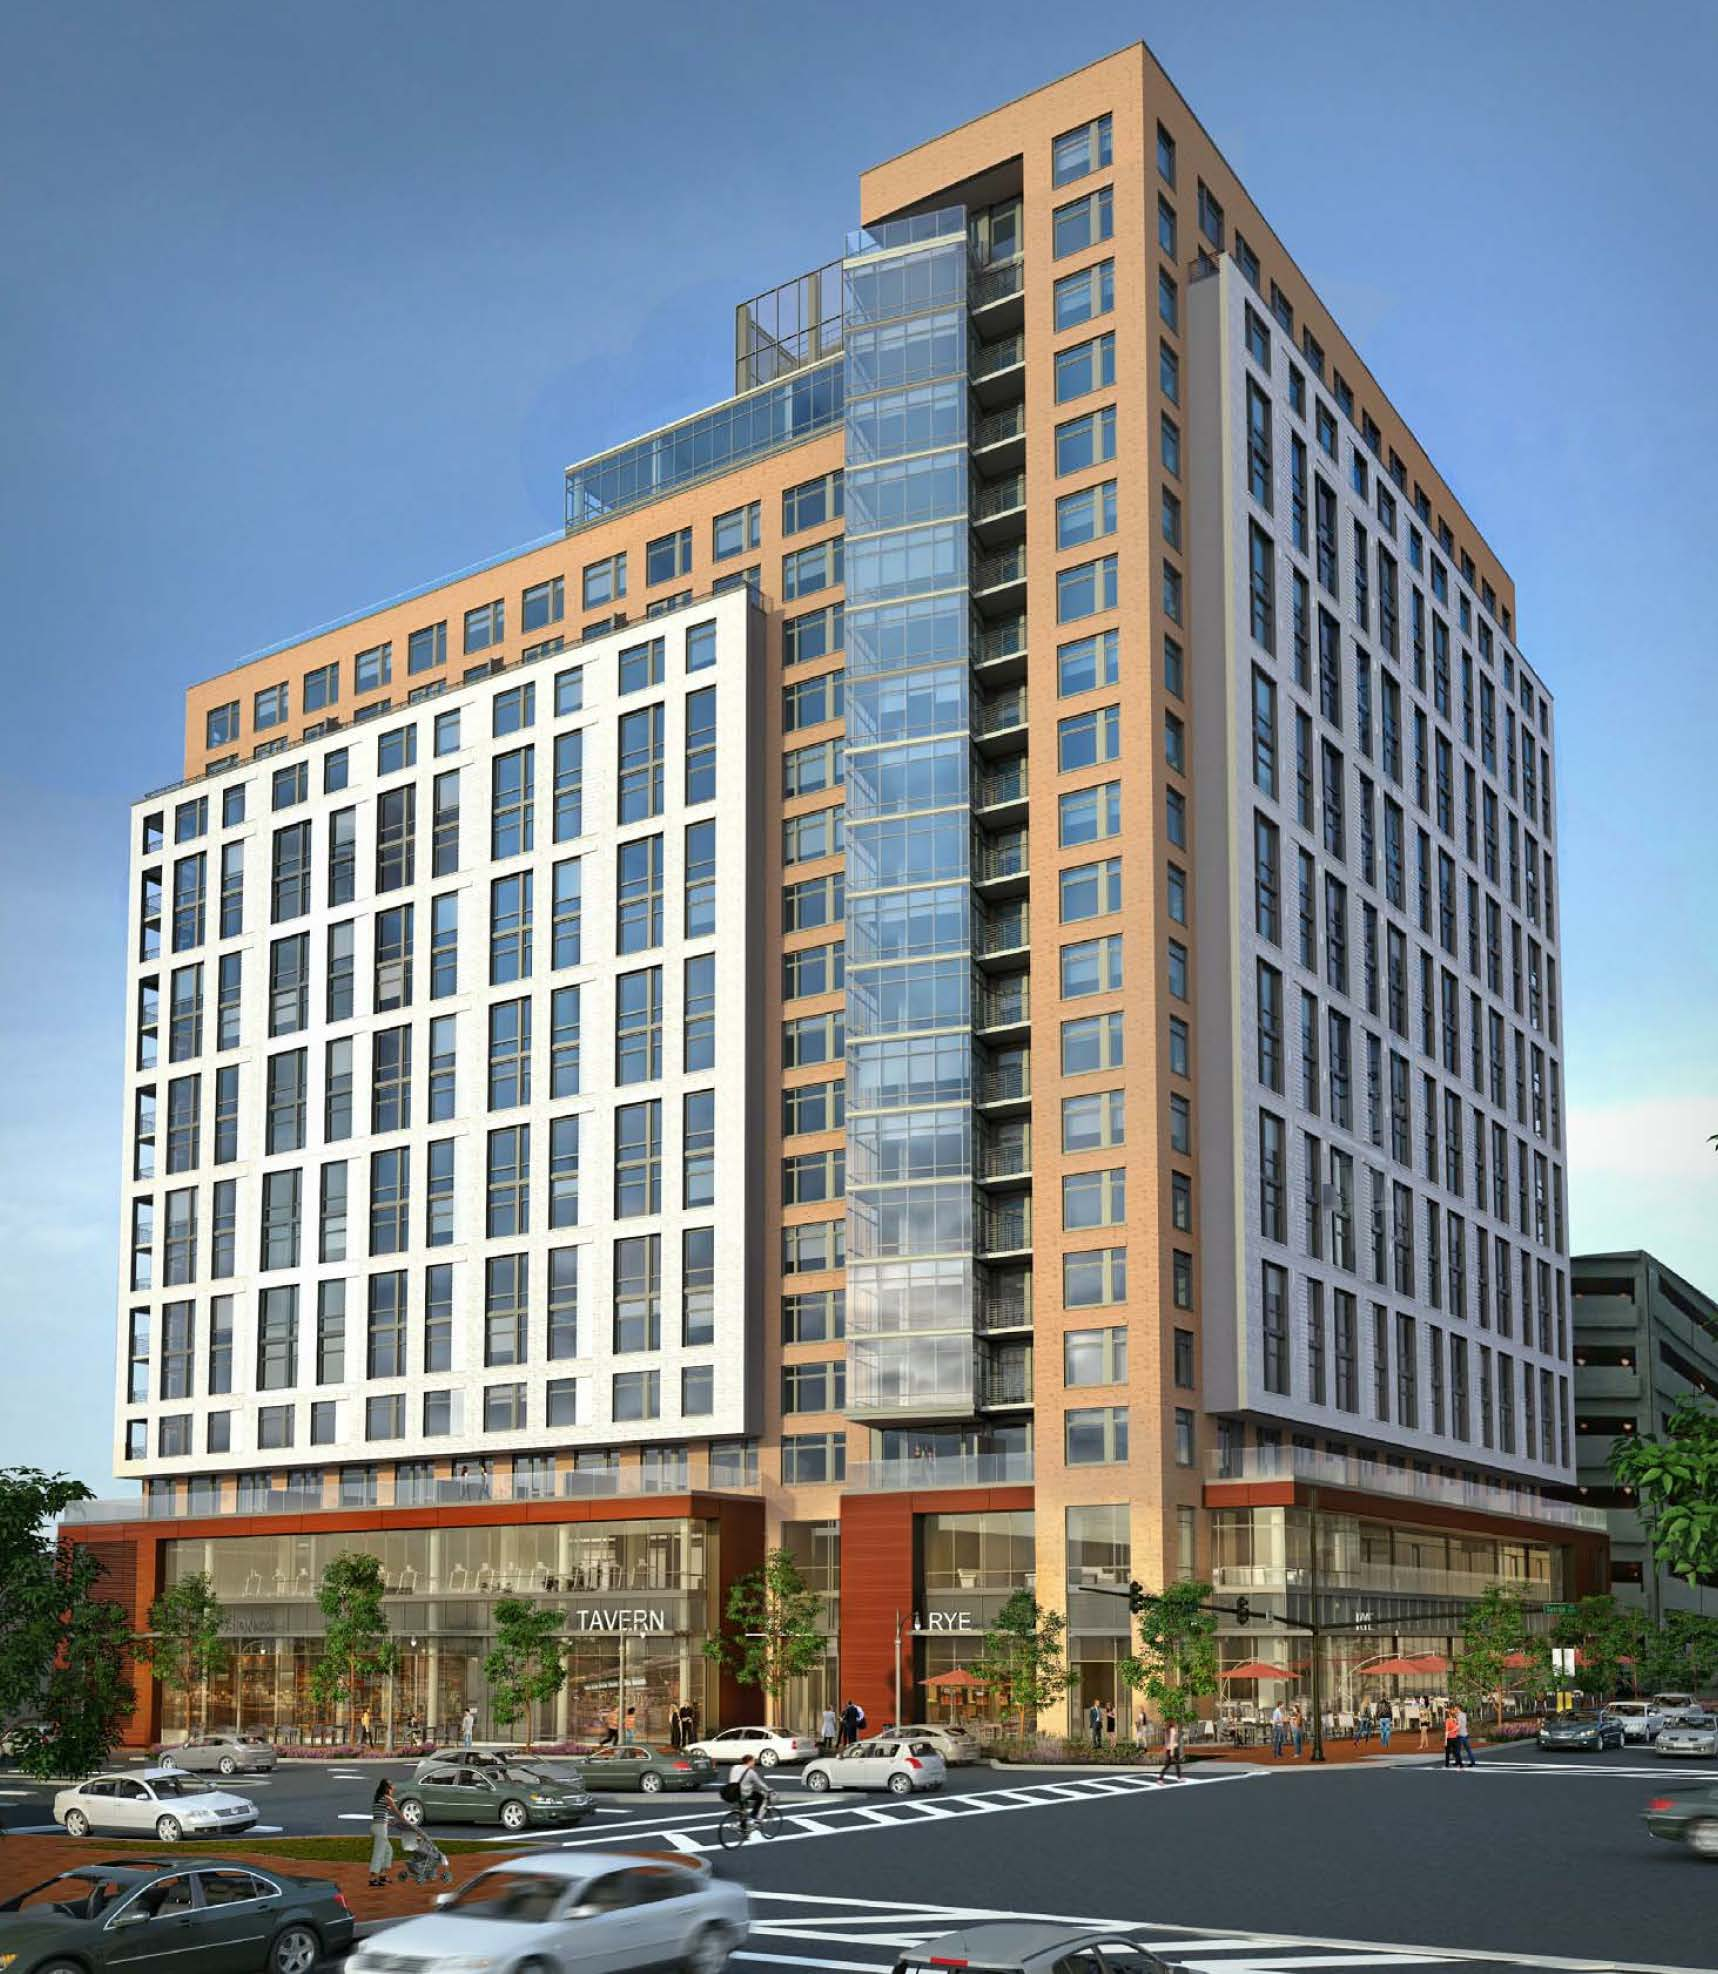 Downtown Washington Dc Apartments: Lendlease Received The Notice To Proceed On The Solaire